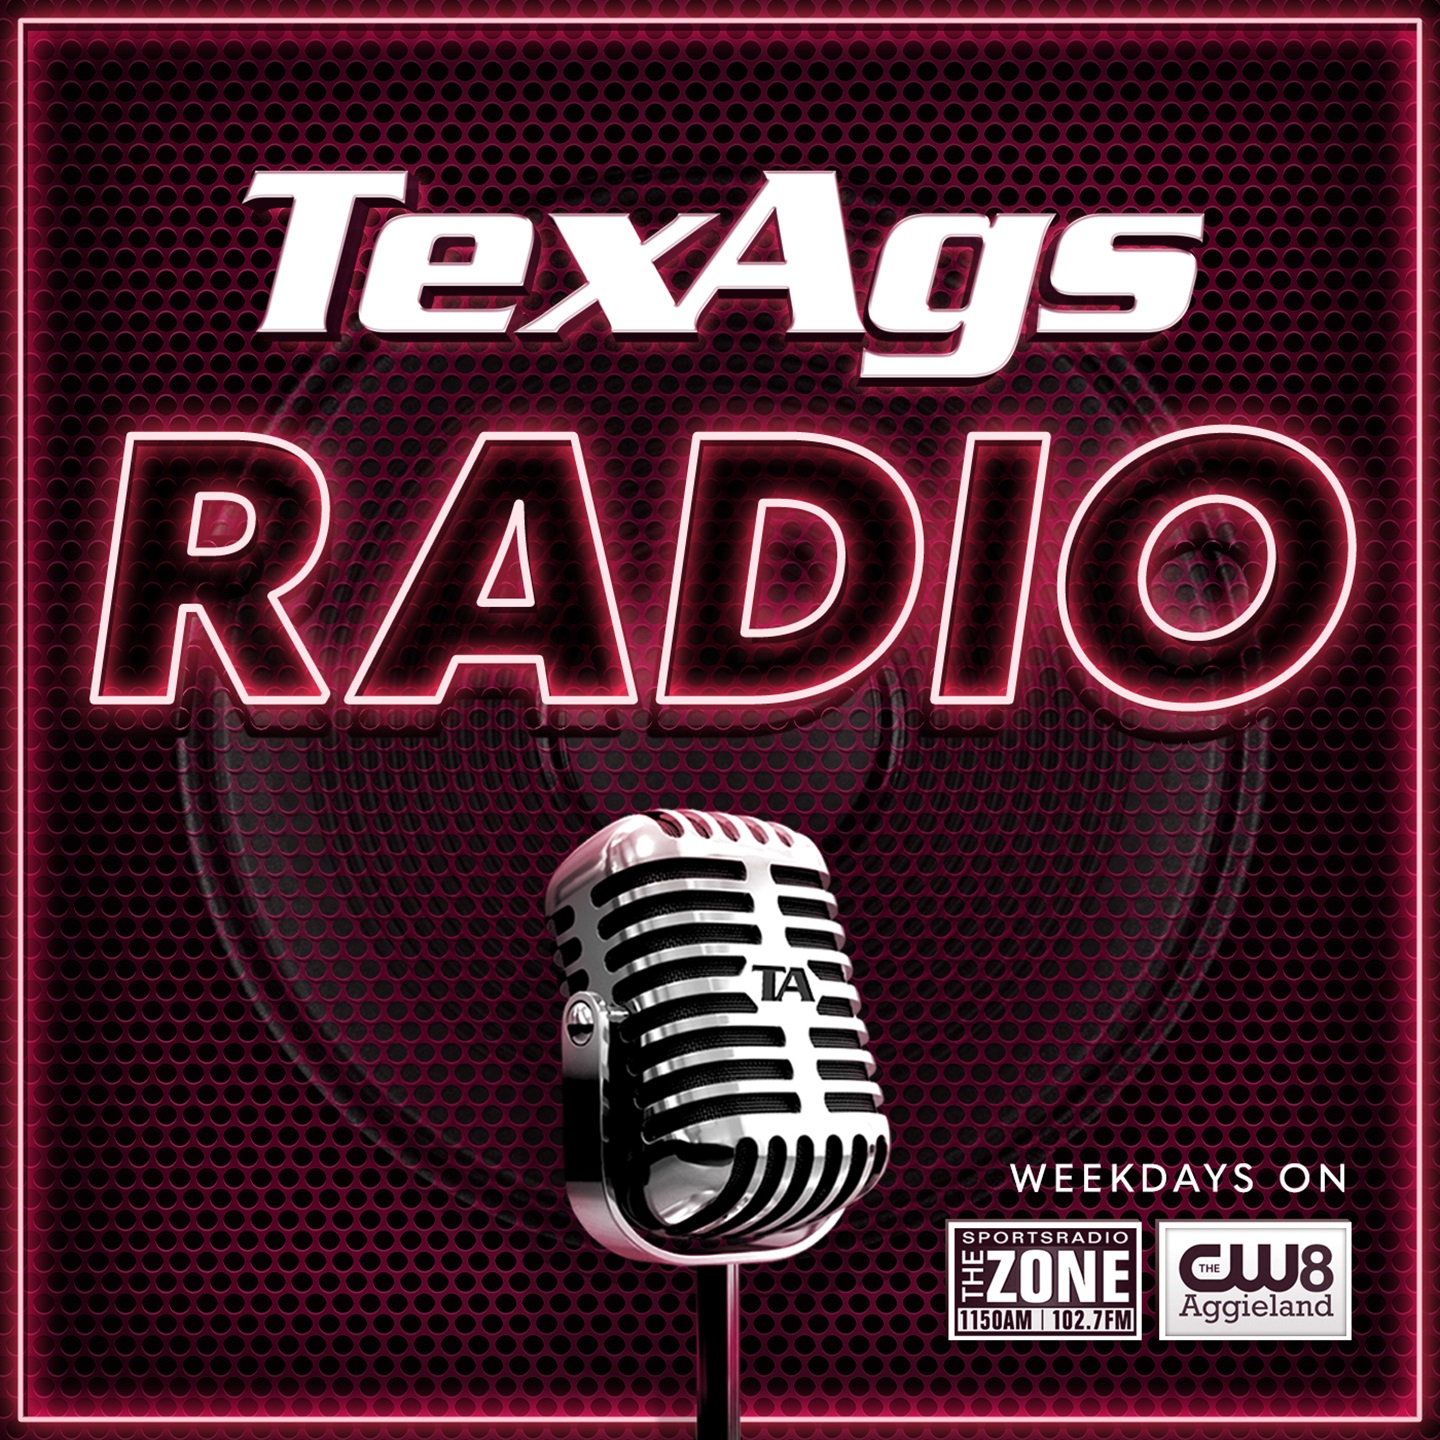 TexAgs Radio: Friday (8/23) full show